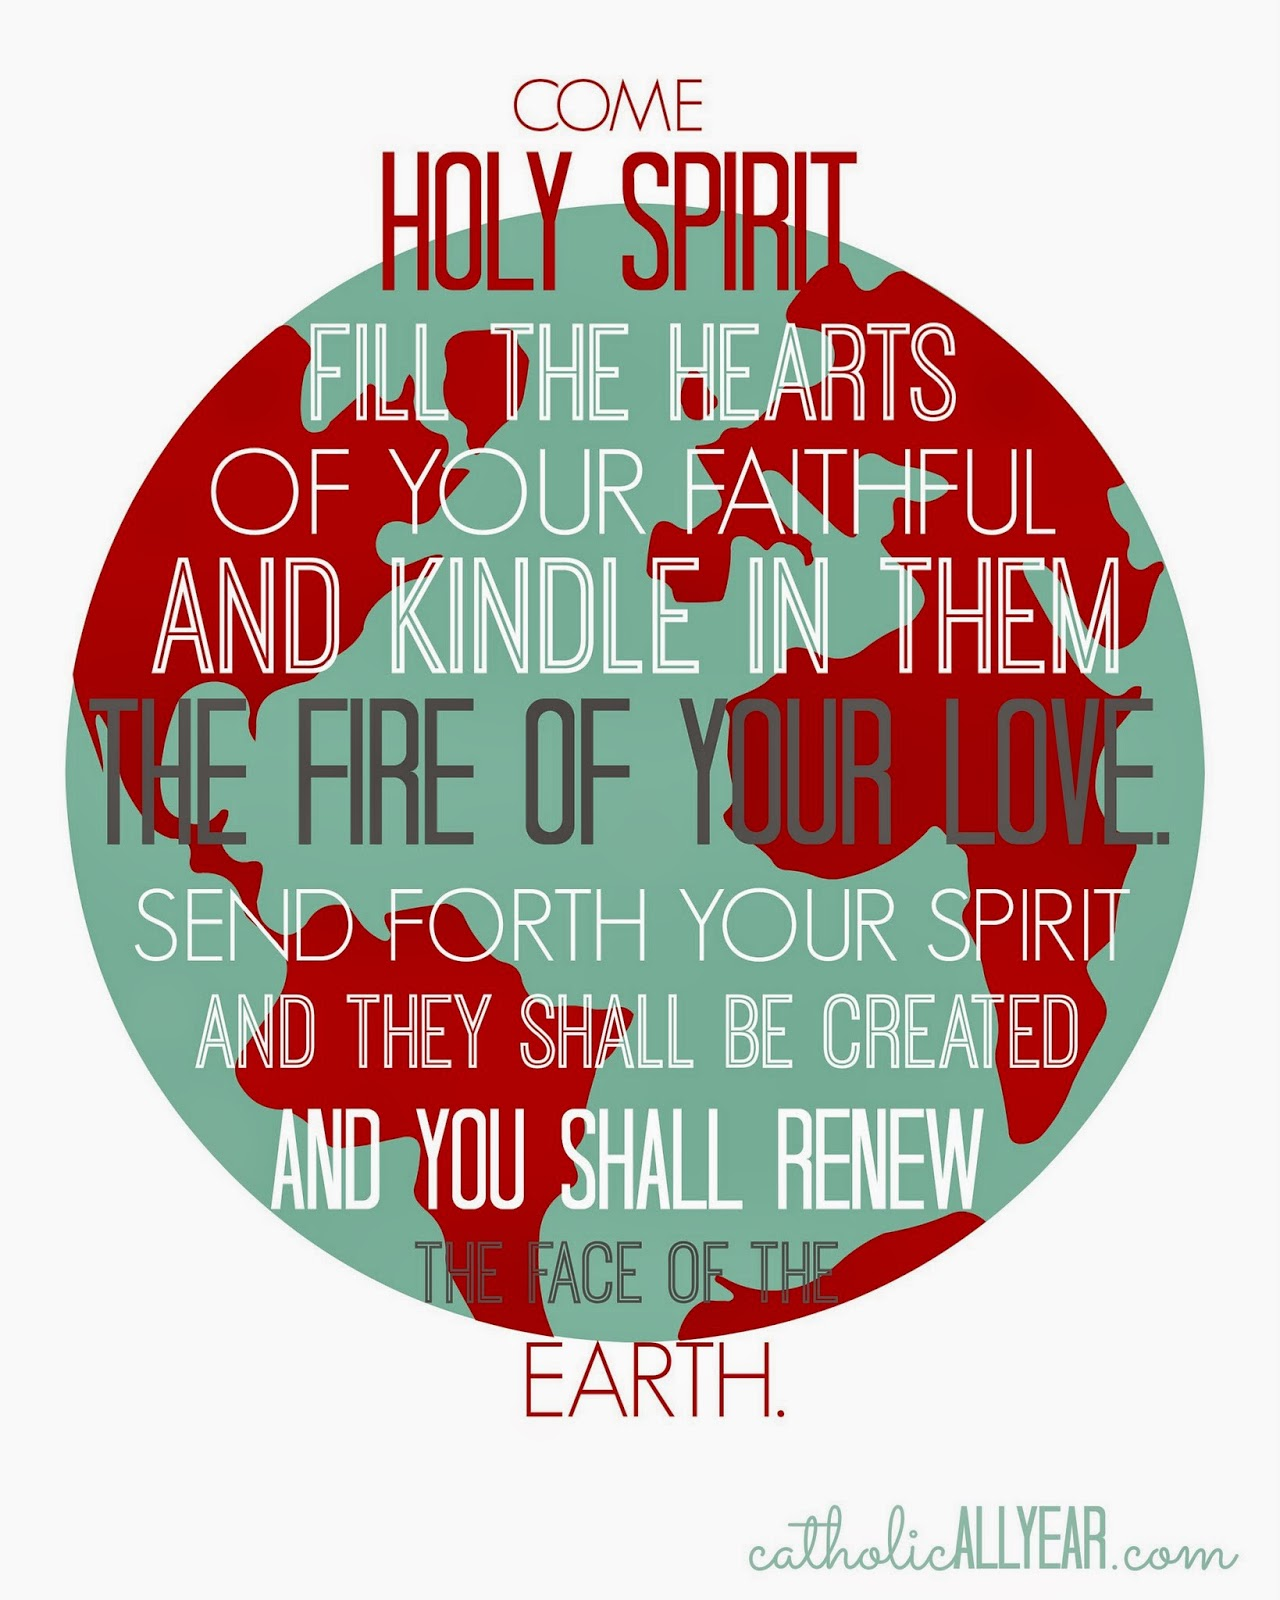 image regarding Come Holy Spirit Prayer Printable titled Pentecost is Coming: Social gathering Plans and Absolutely free Printables